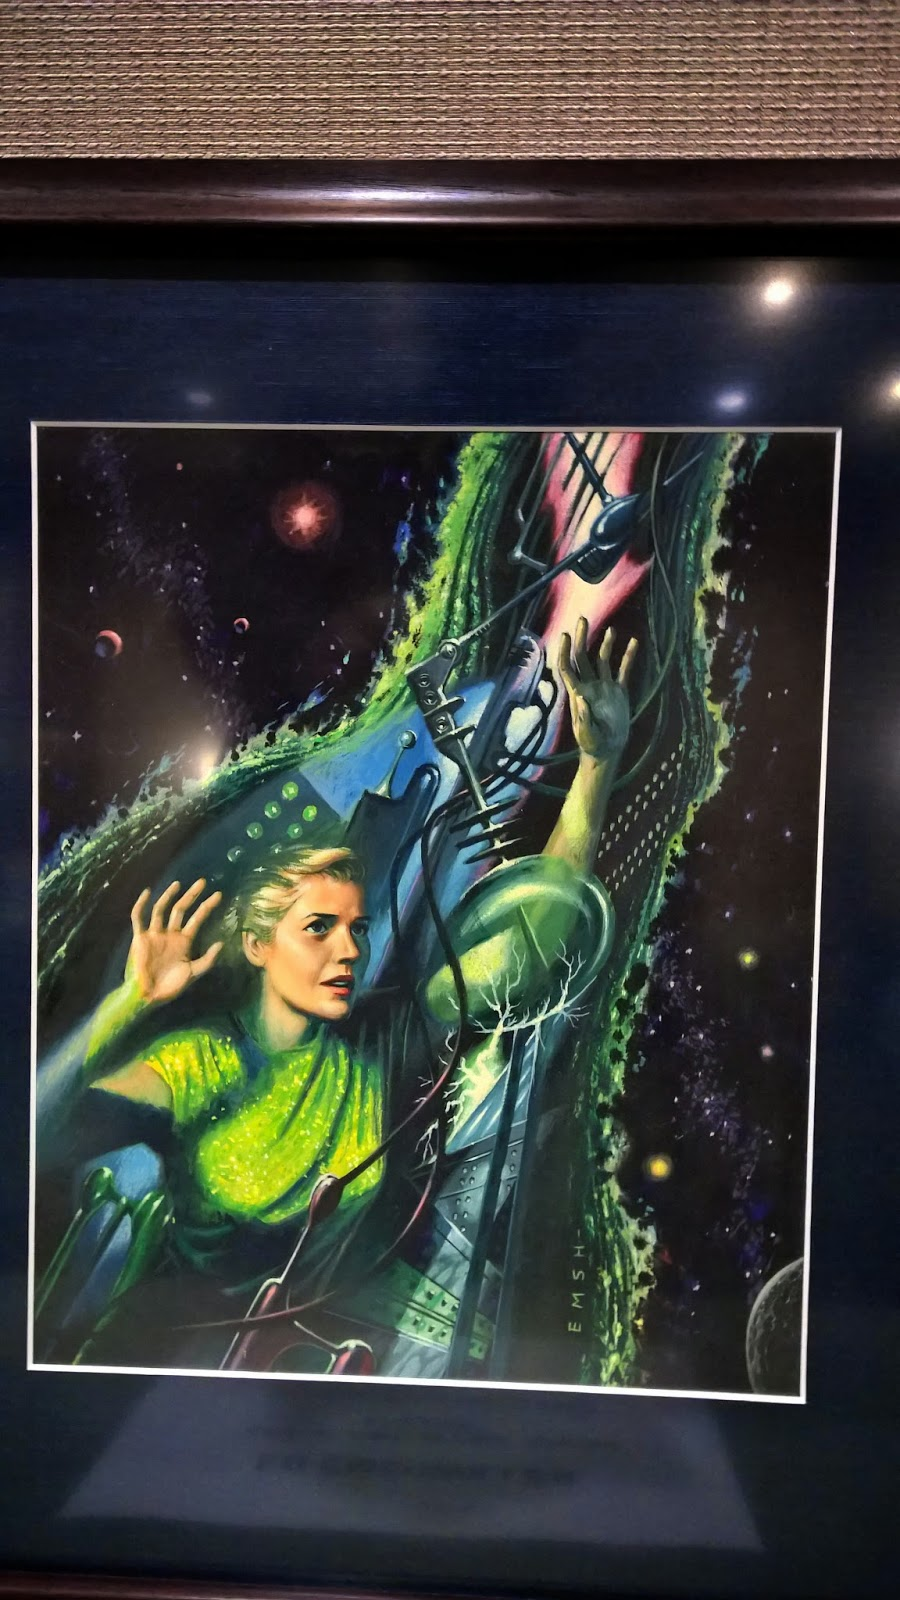 Cover painting by Ed Emshwiller for Space-time in one tough lesson